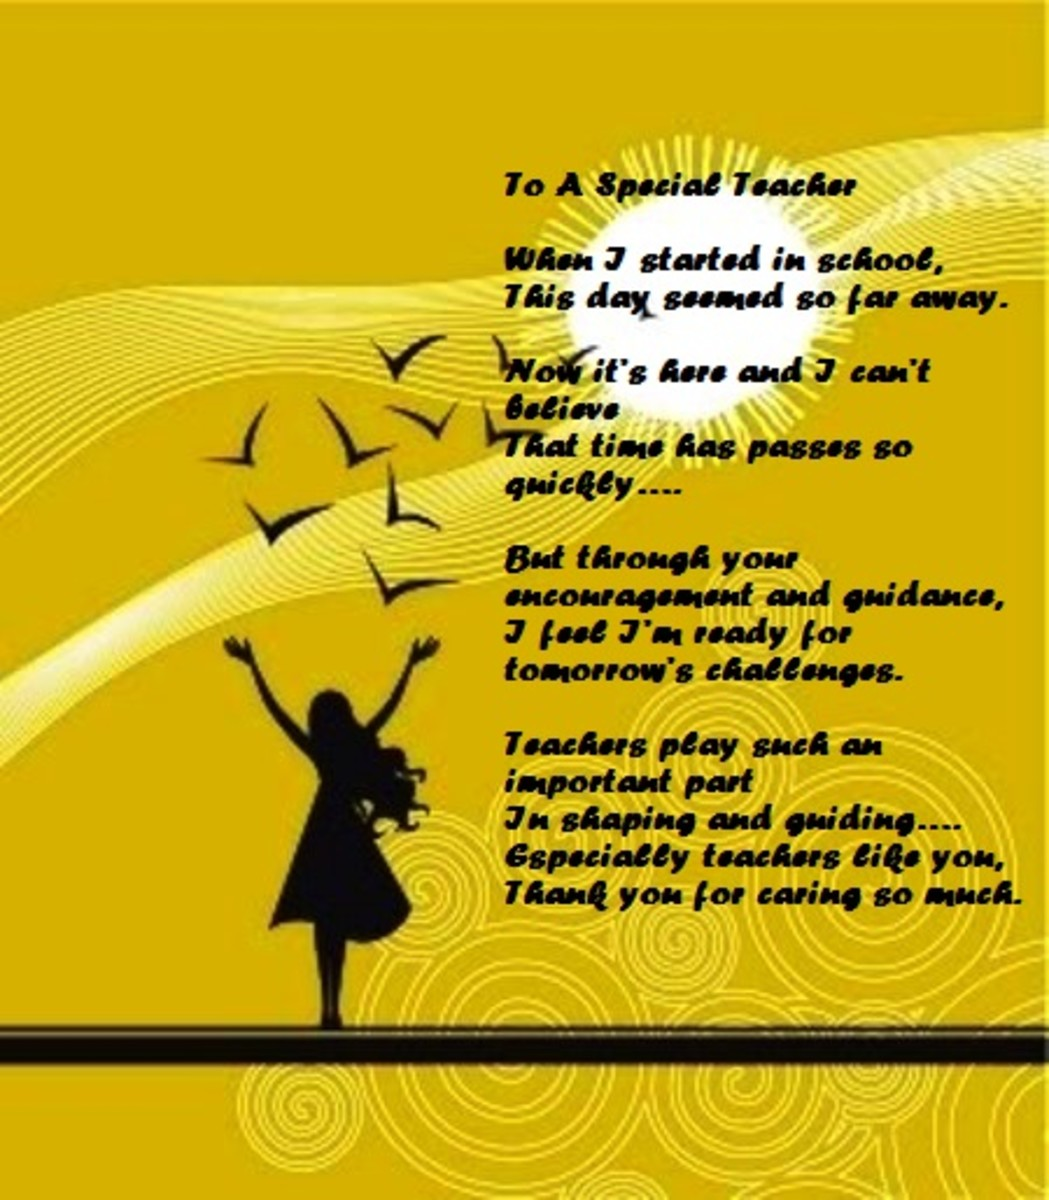 Heart Touching Quotes For Teachers Day: Teachers' Day Card Messages, Appreciation Quotes, Poems